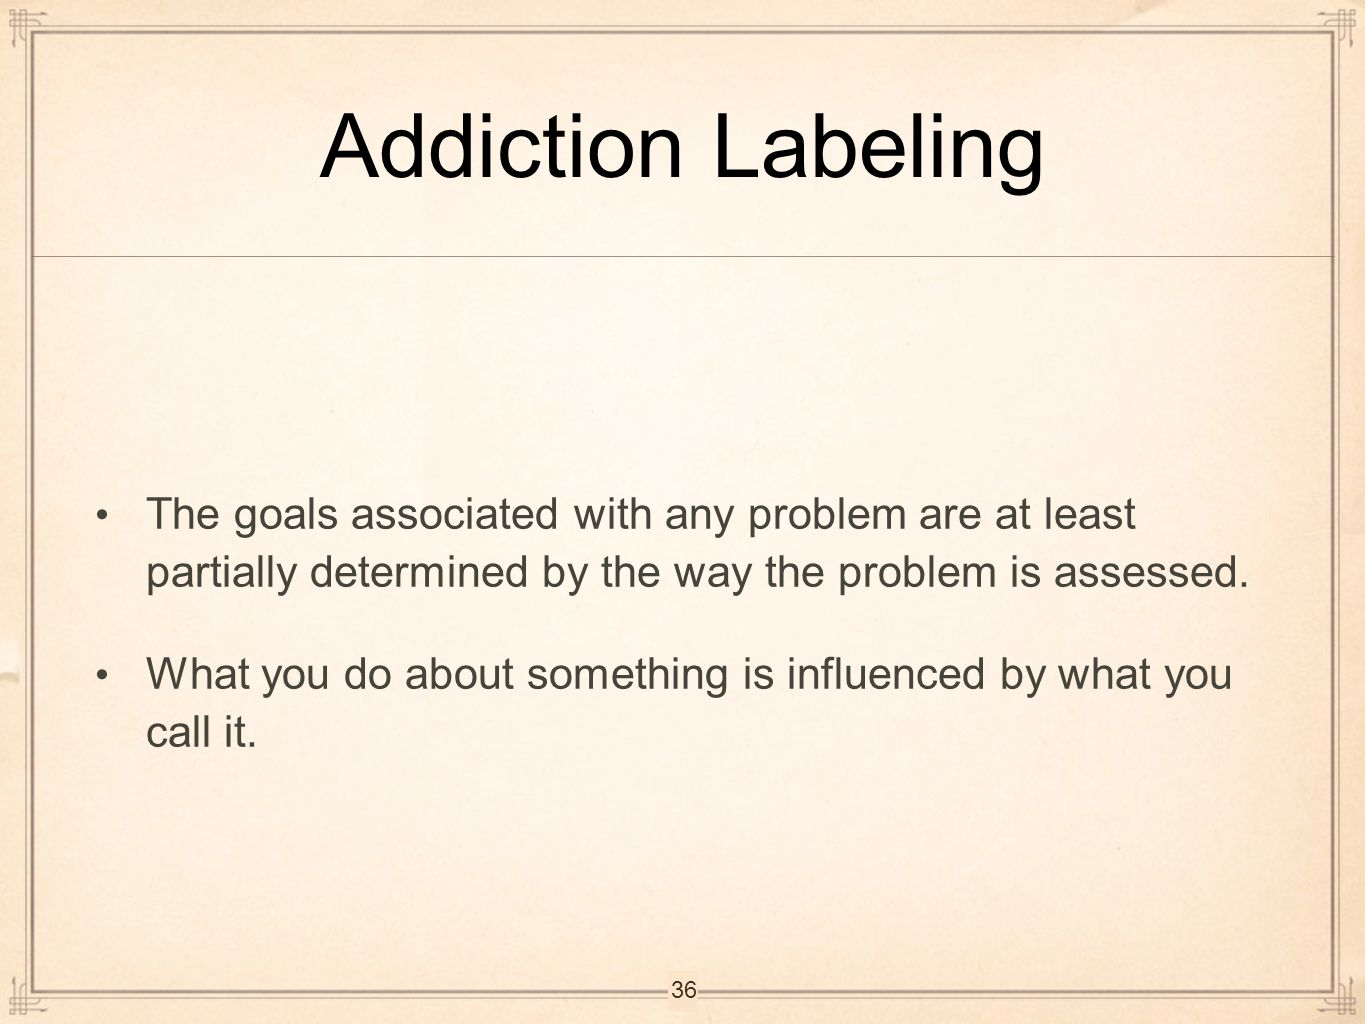 Addiction Labeling The goals associated with any problem are at least partially determined by the way the problem is assessed.